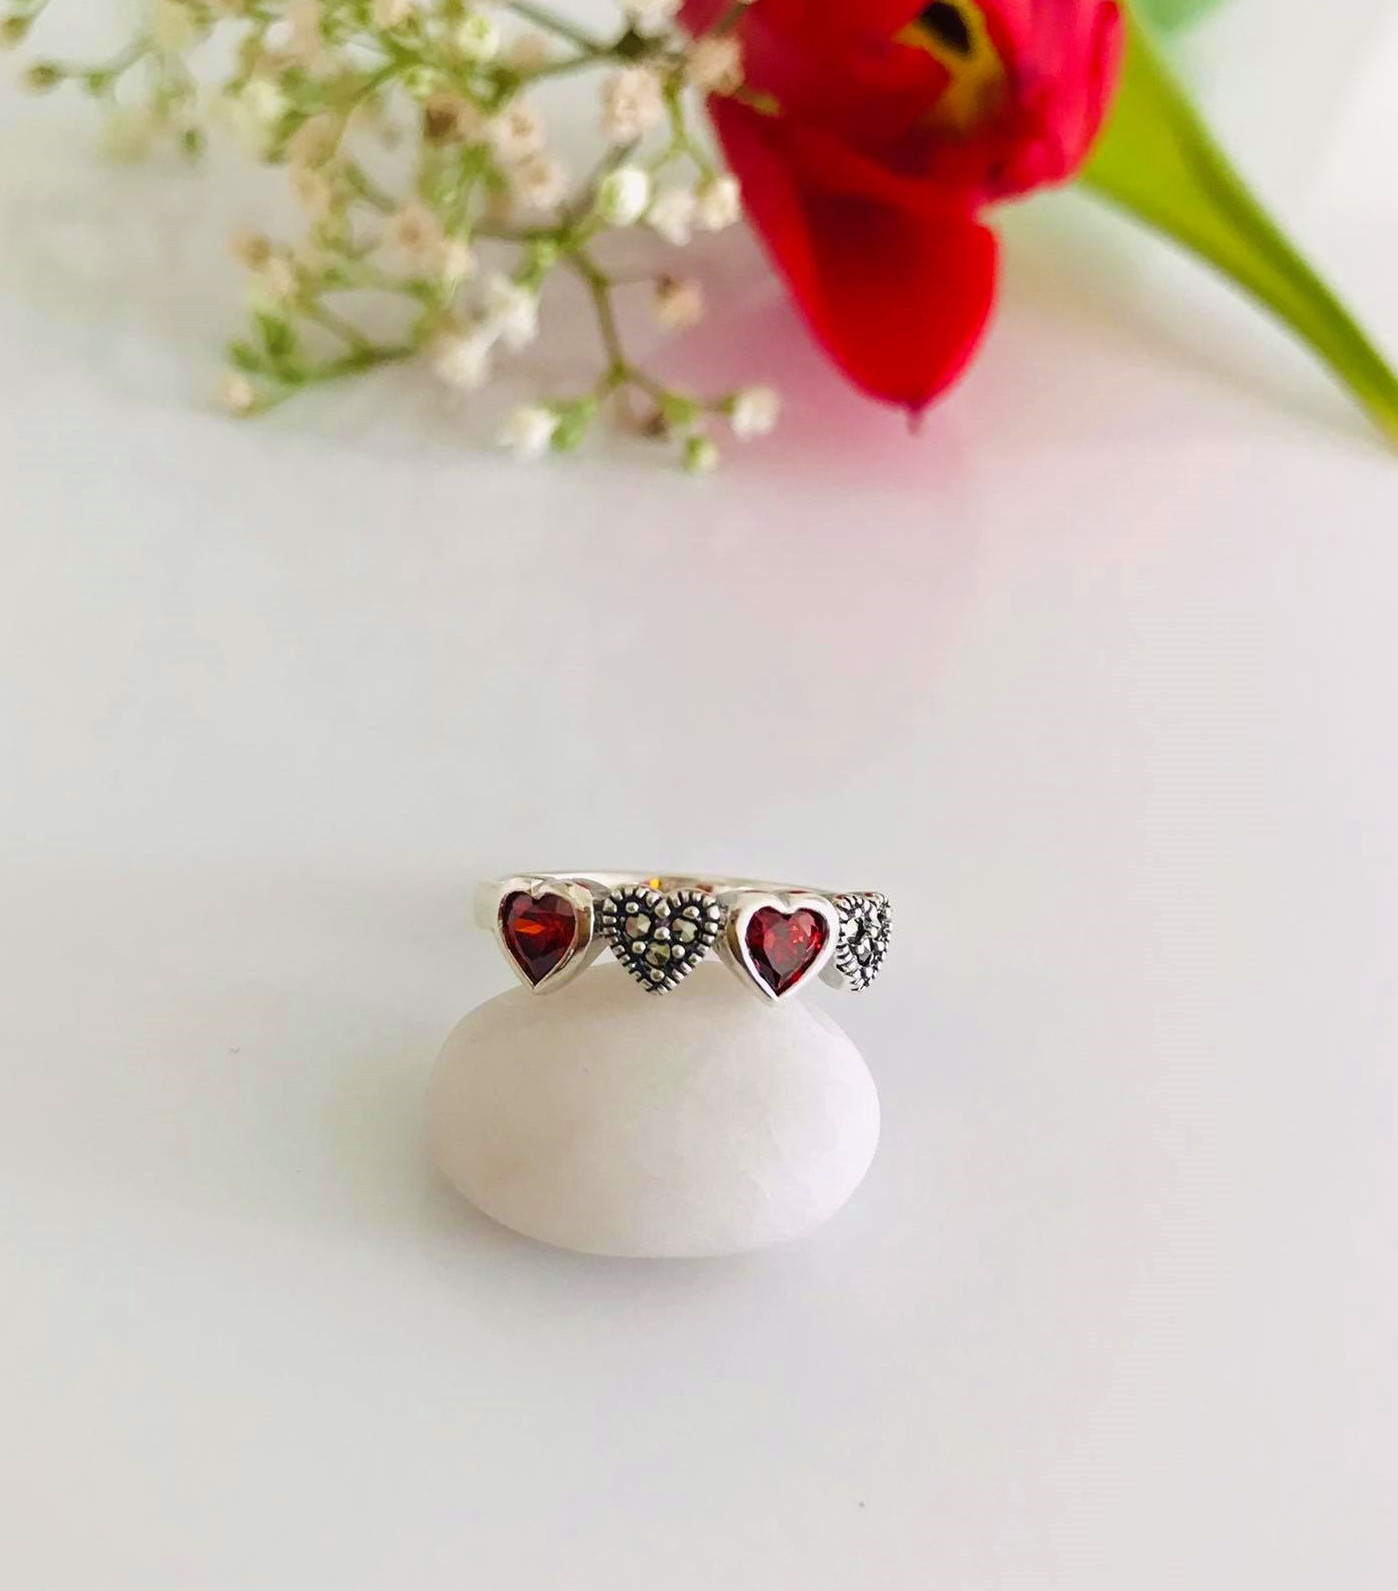 Garnet CZ and Marcasite set in Sterling Silver Ring Image